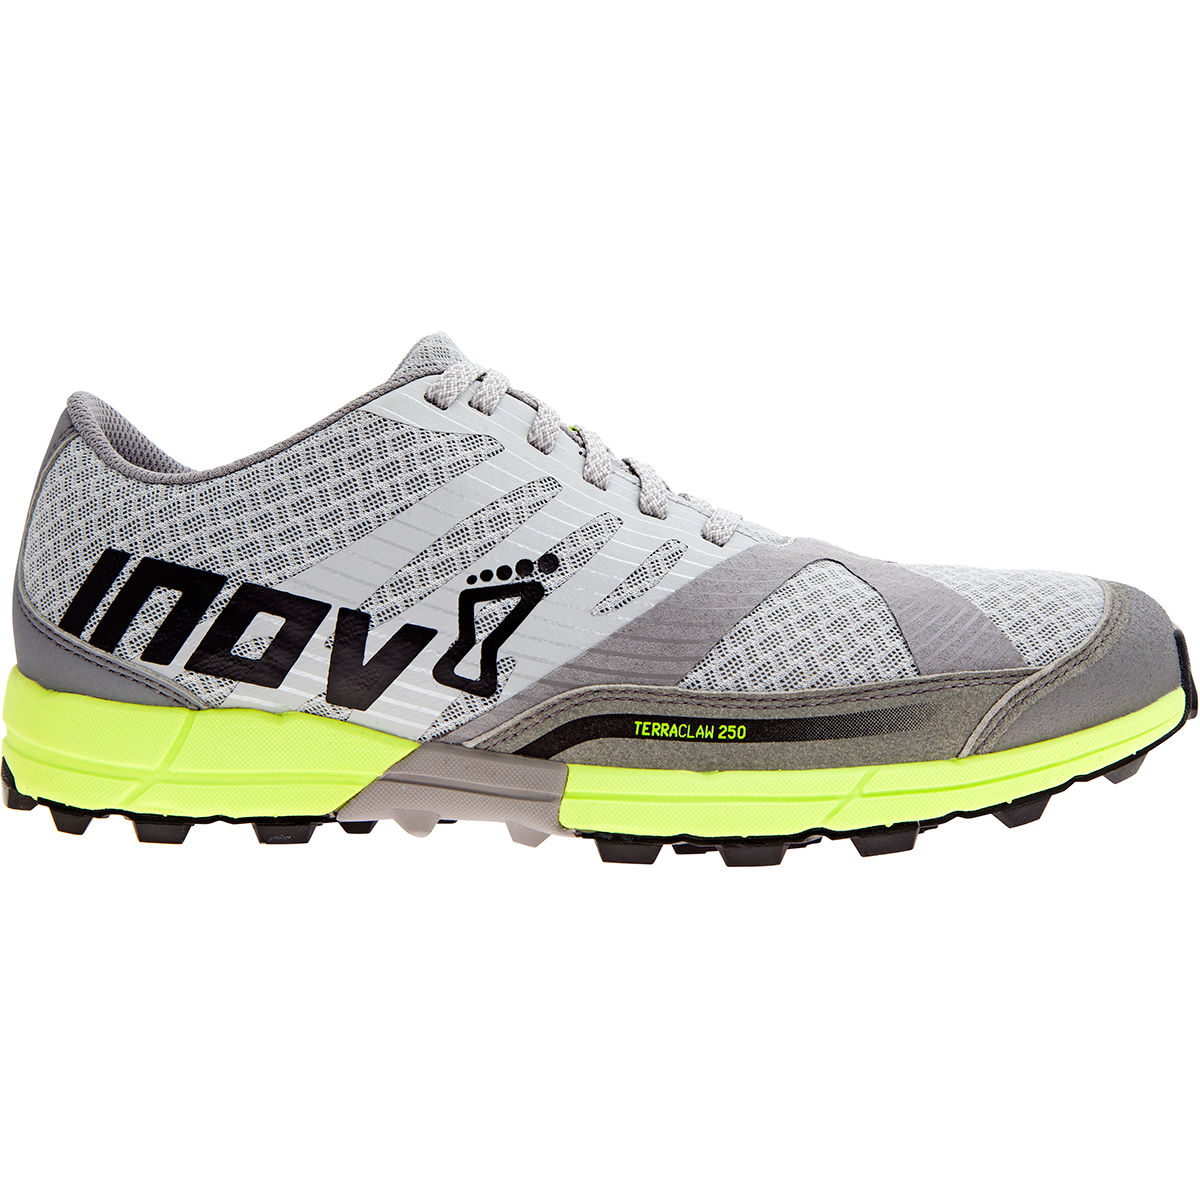 Chaussures Inov-8 Terraclaw 250 Chill (PE17) - 11 UK Silver/Yellow Chaussures de running trail